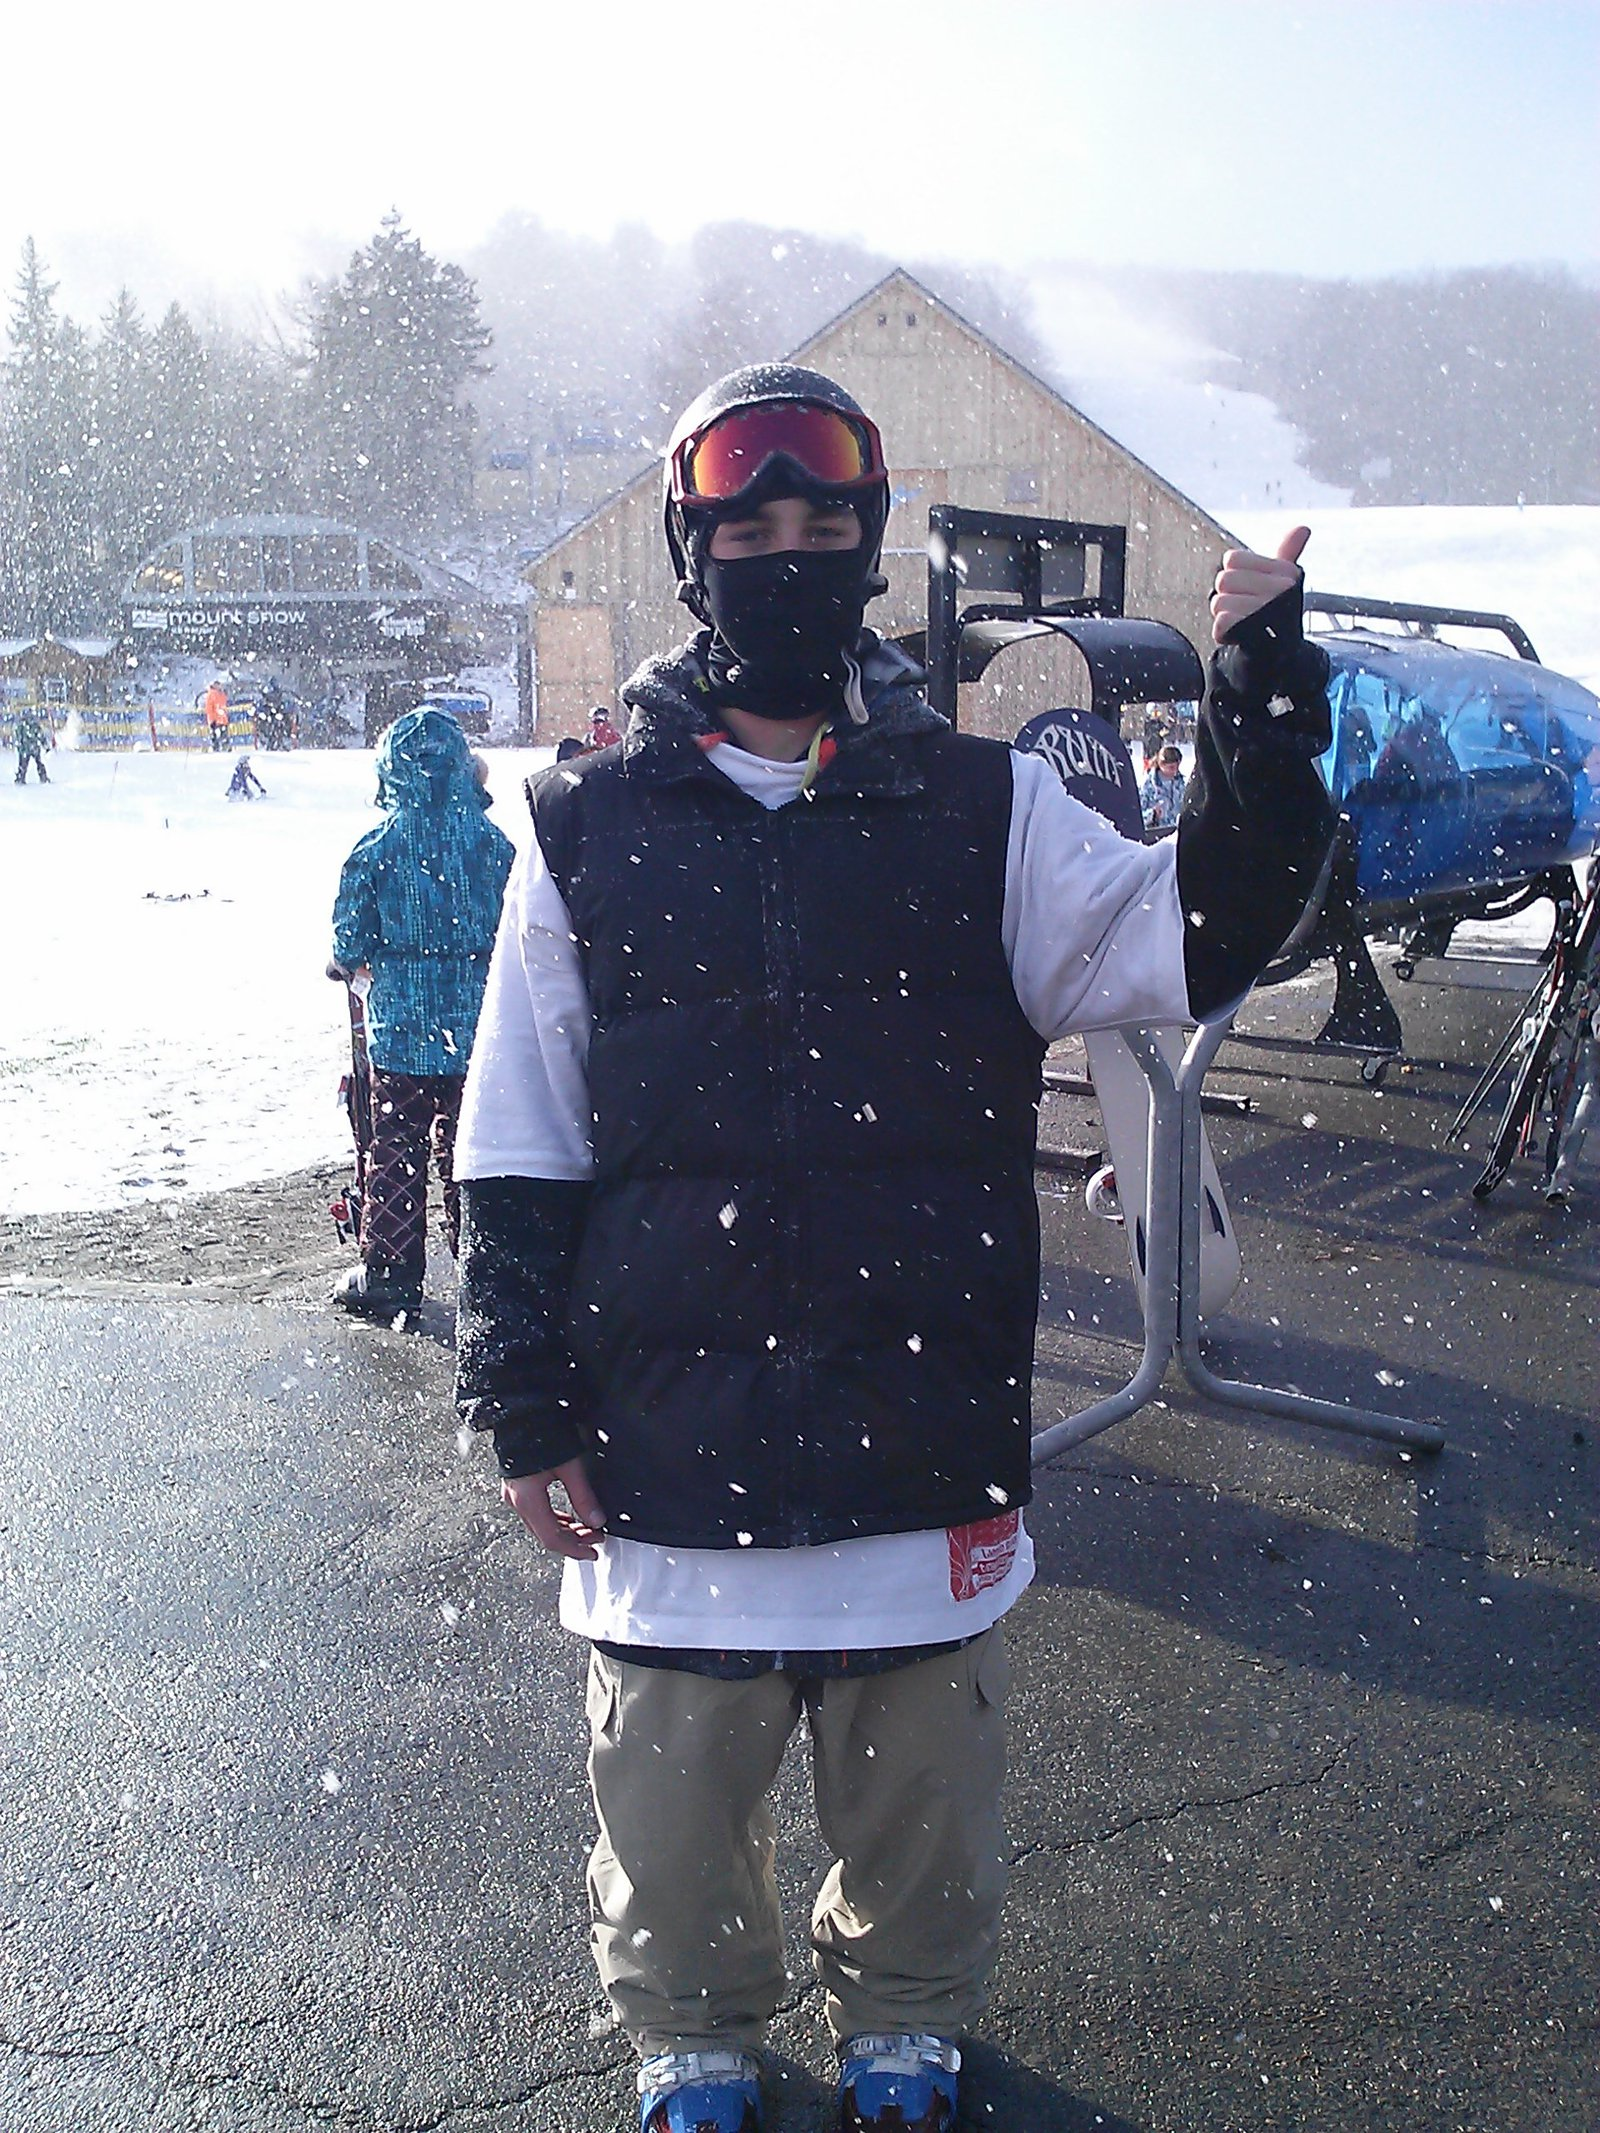 At mt. snow